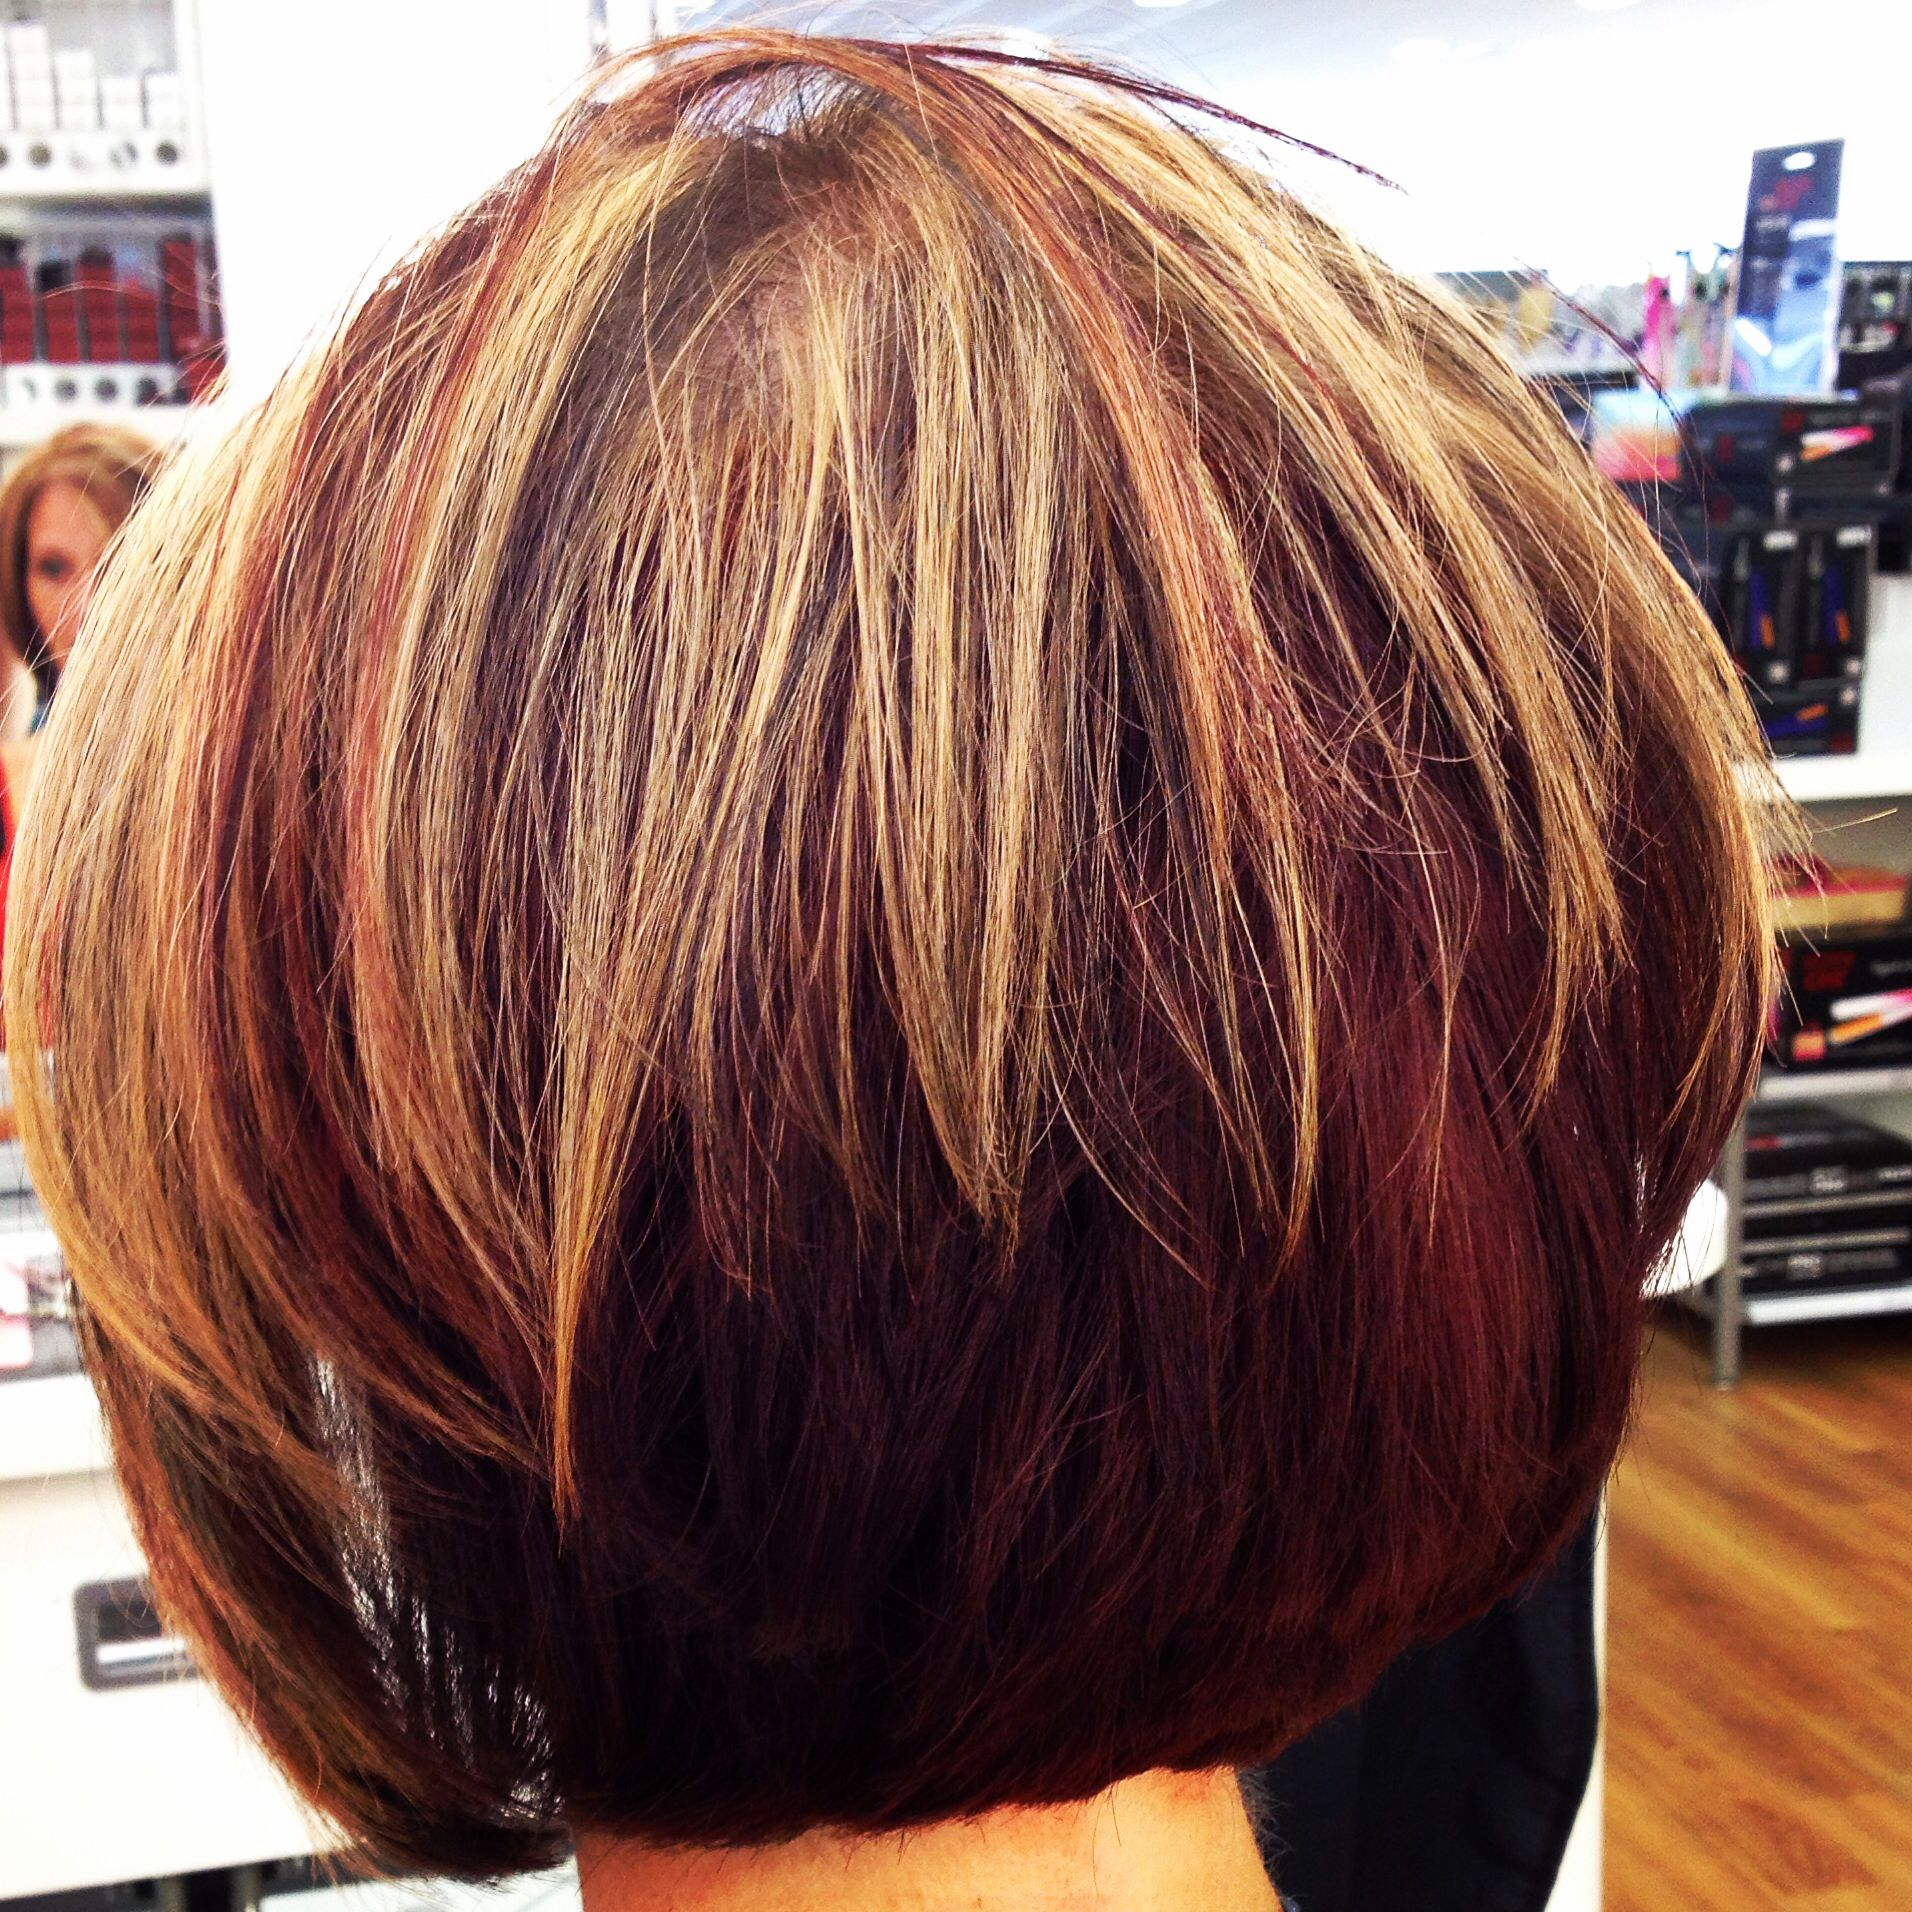 Red Blonde And Dark Highlights And Lowlights Red Mahogany Underneath Diagonal Forward Bob Redken Certifie Hair Color Highlights Blonde Highlights Red To Blonde